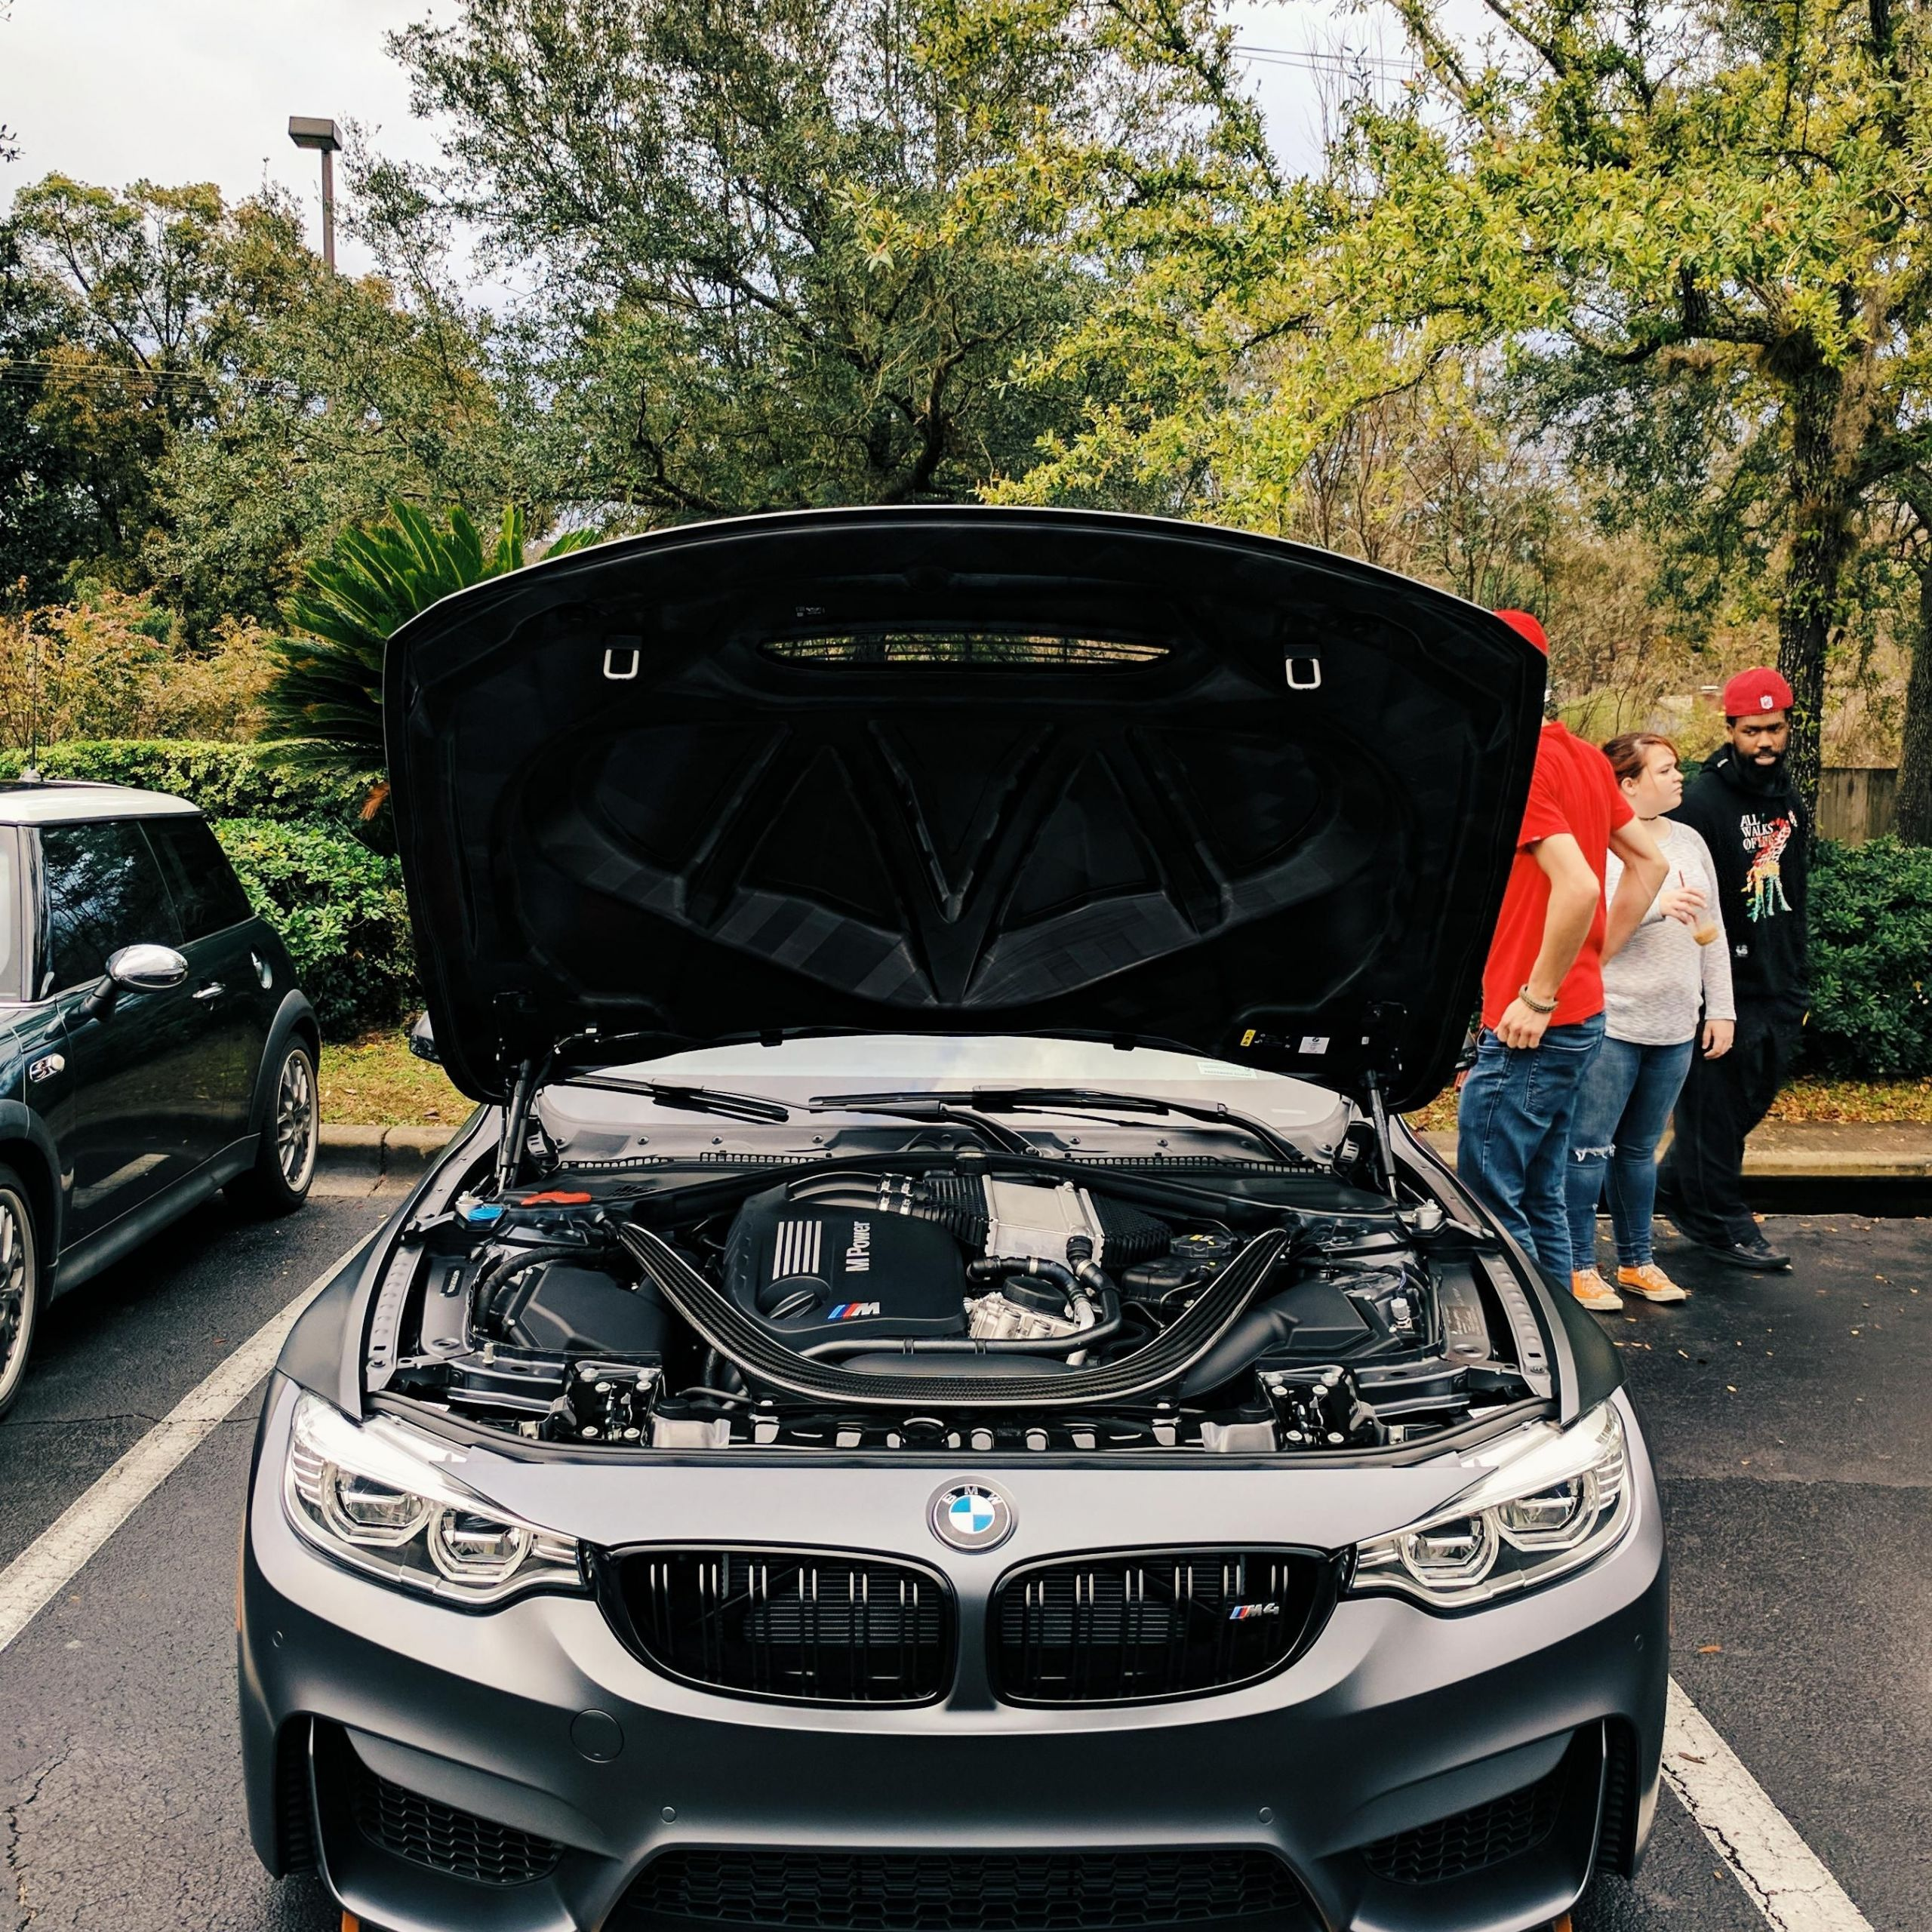 Affordable Auto Sales Luxury M4 Gts at Local Cars and Coffee Bmw Cars M3 Car M4